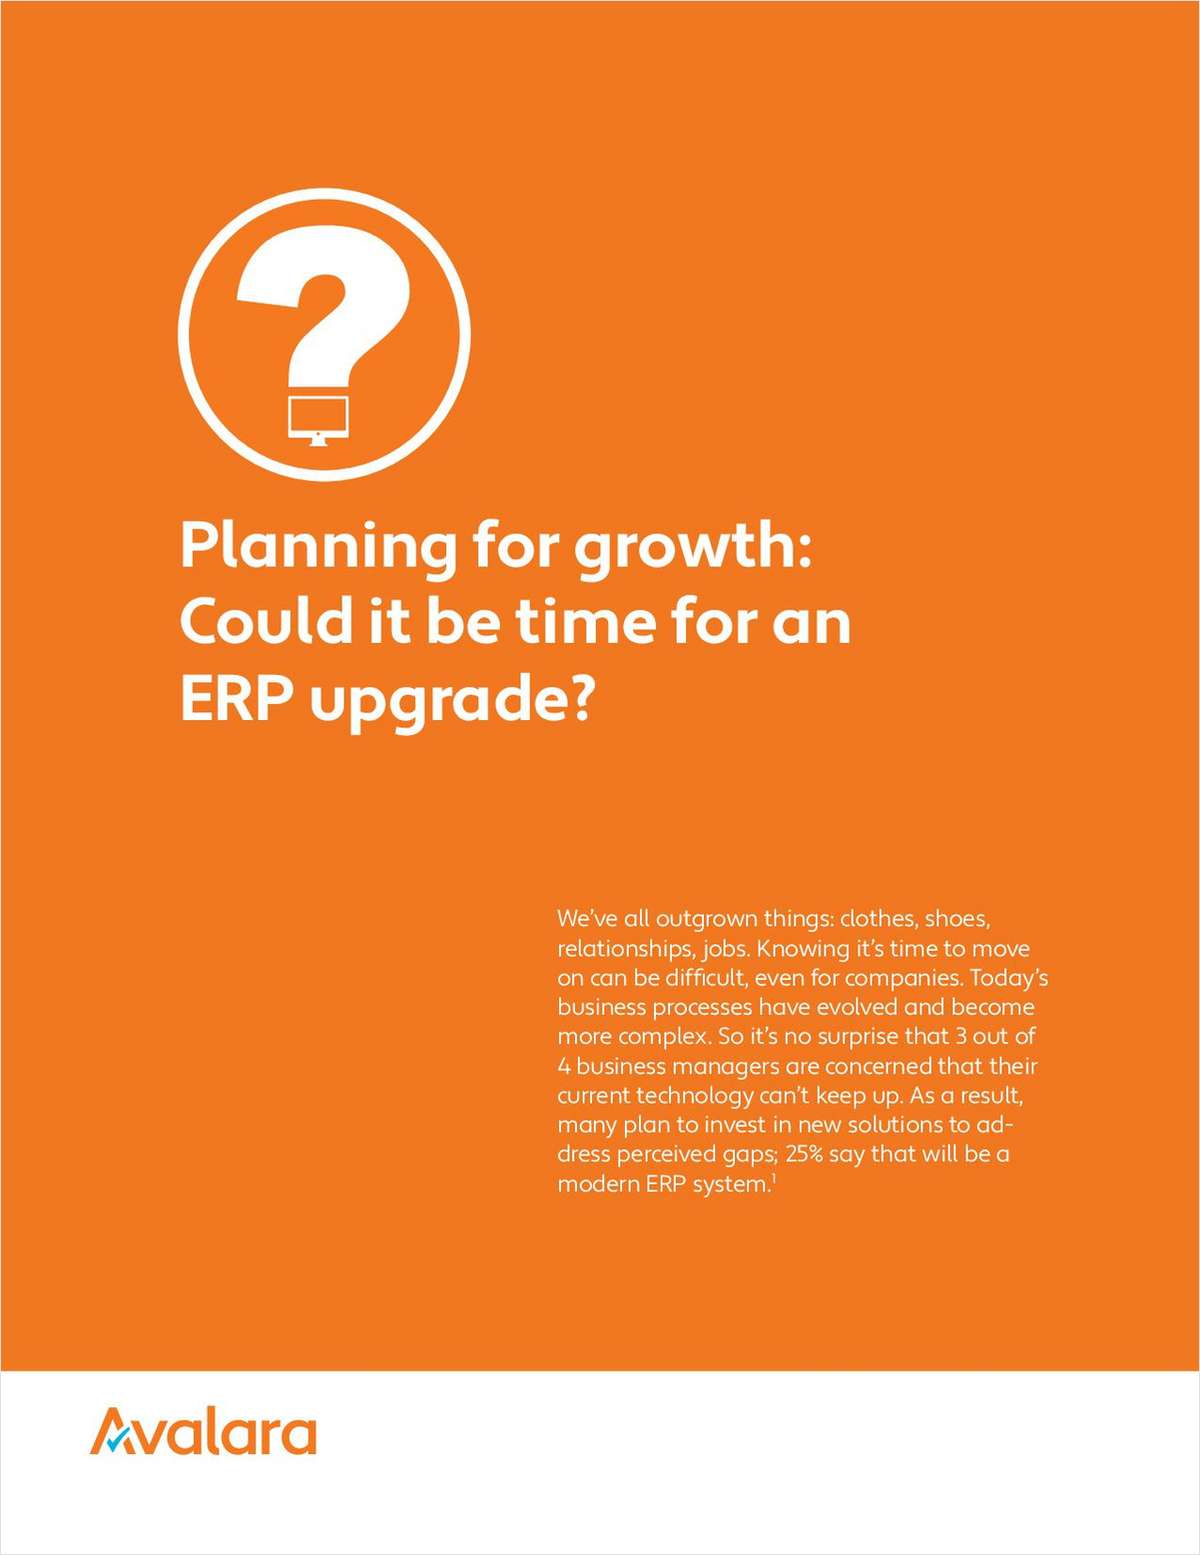 Planning for Growth: Could It Be Time for an ERP Upgrade?